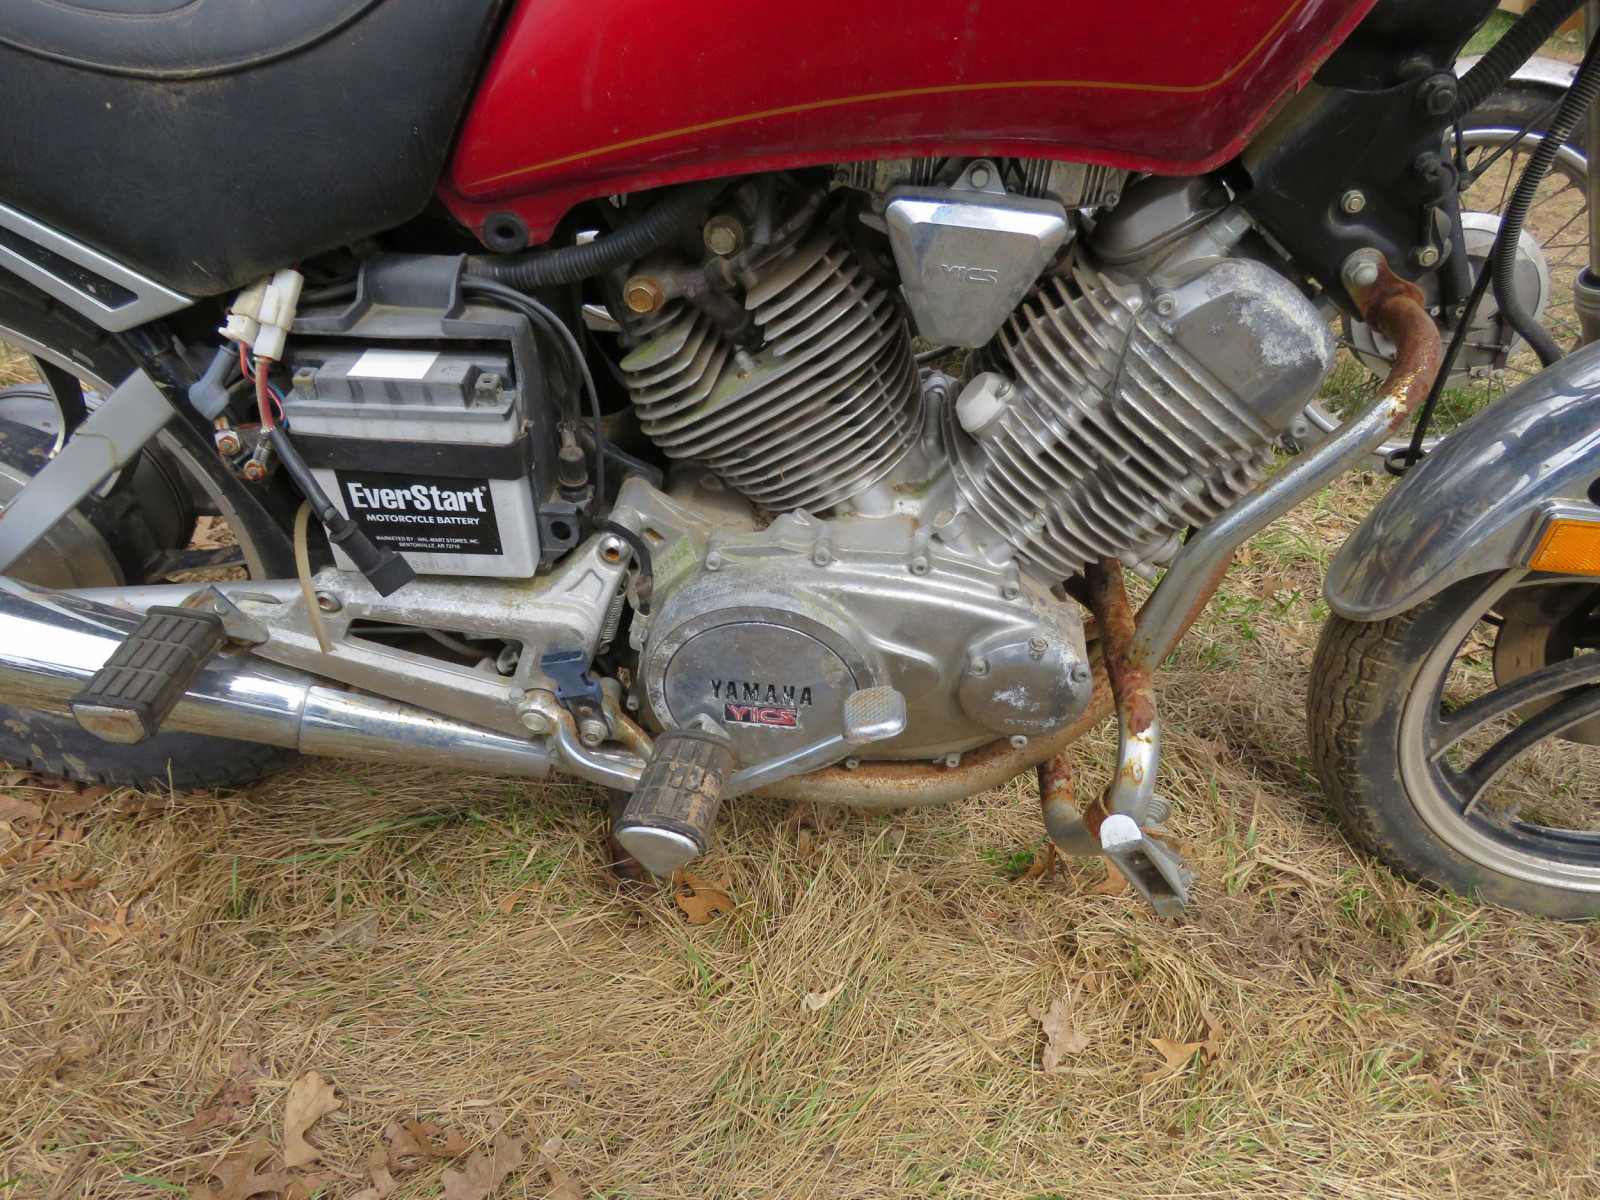 1982 Yamaha Motorcycle for Project or parts - Image 6